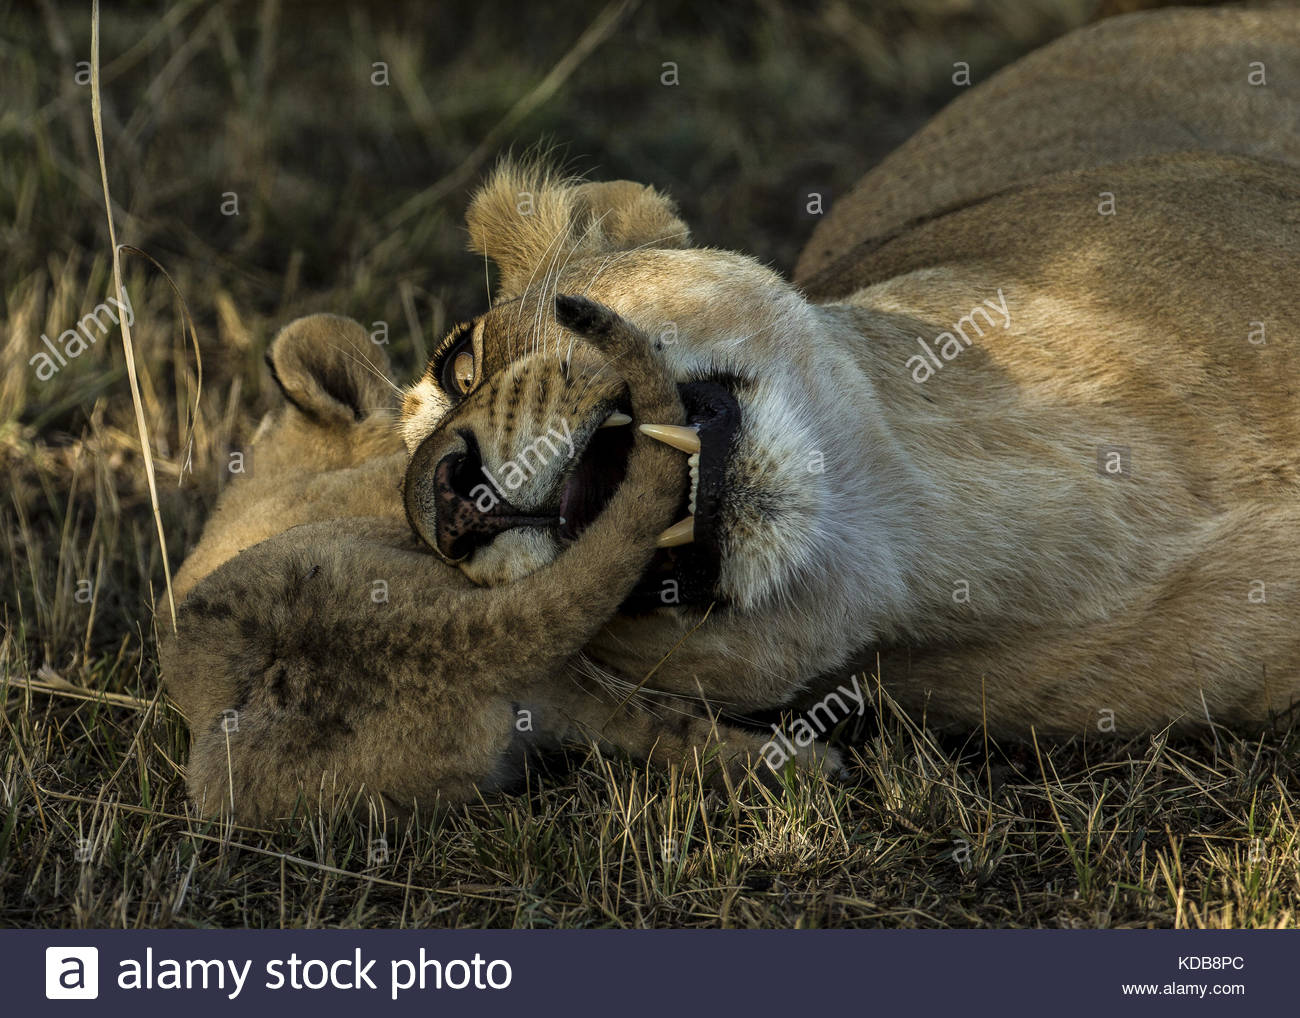 A lioness, Panthera leo, playfully bites her cub. - Stock Image